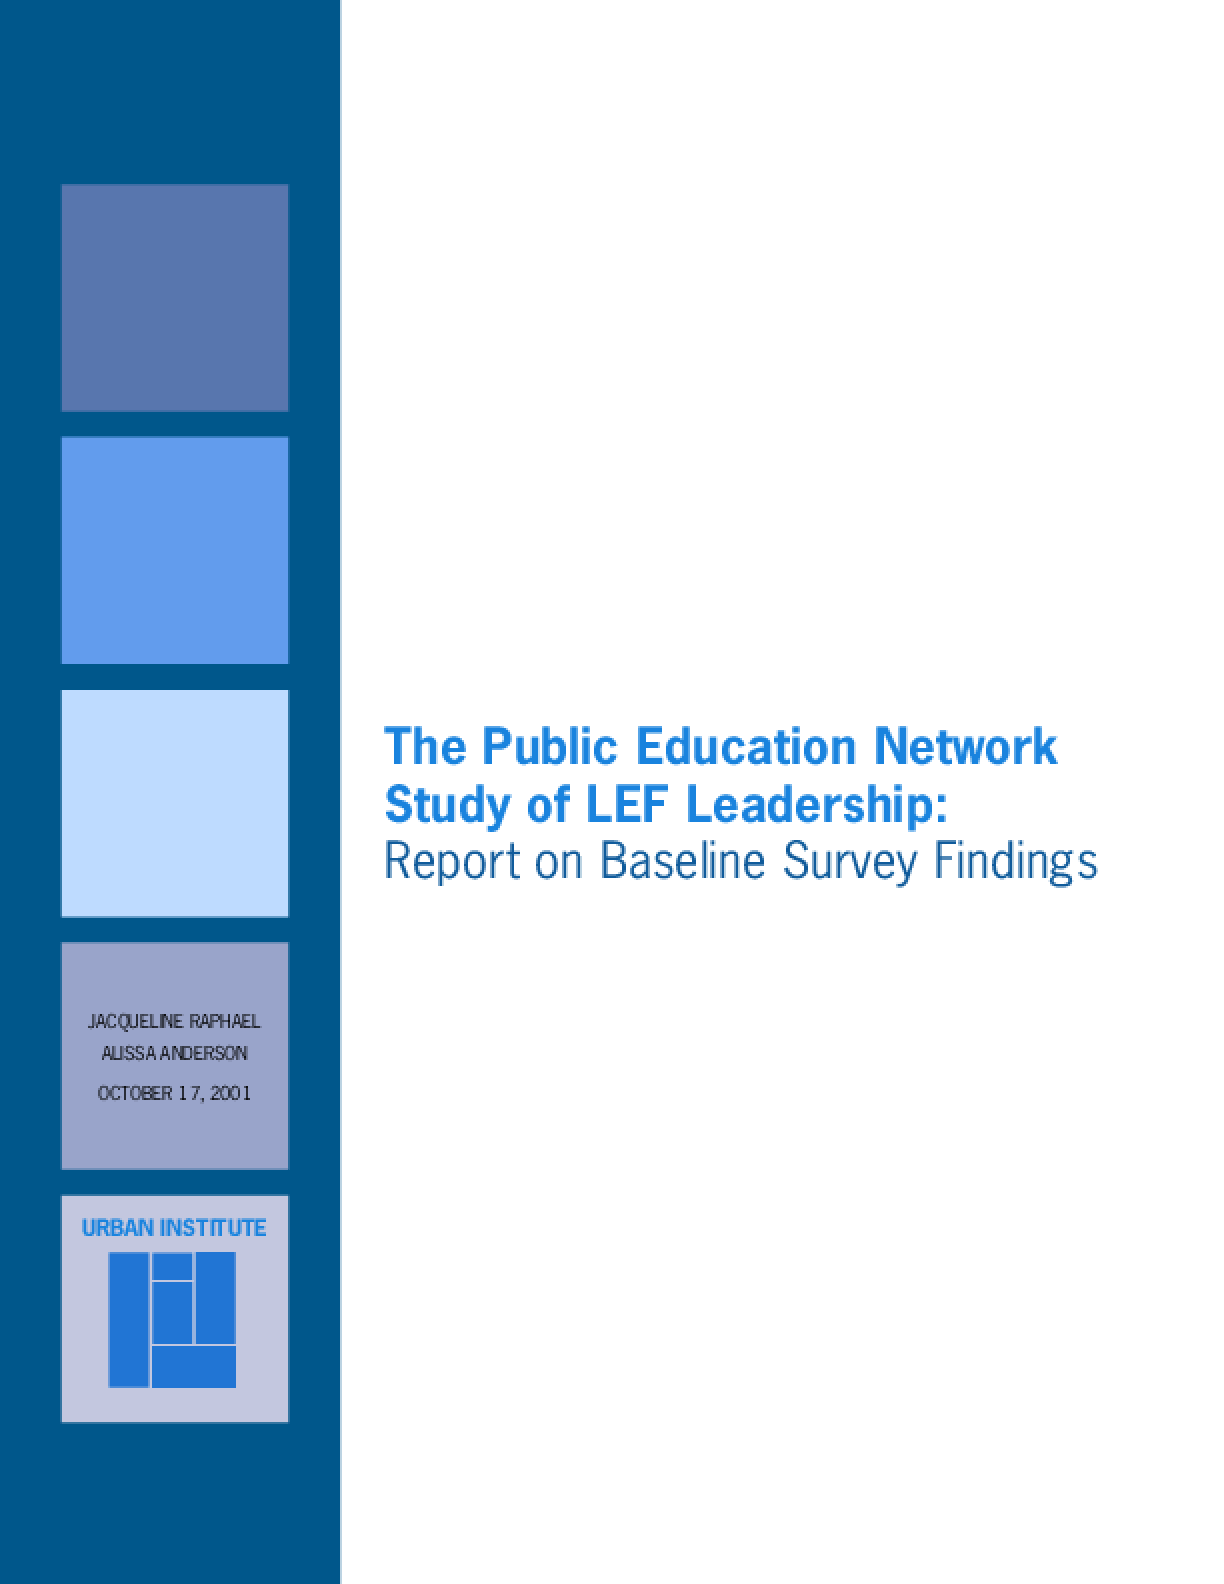 The Public Education Network Study of LEF Leadership: Report on Baseline Survey Findings